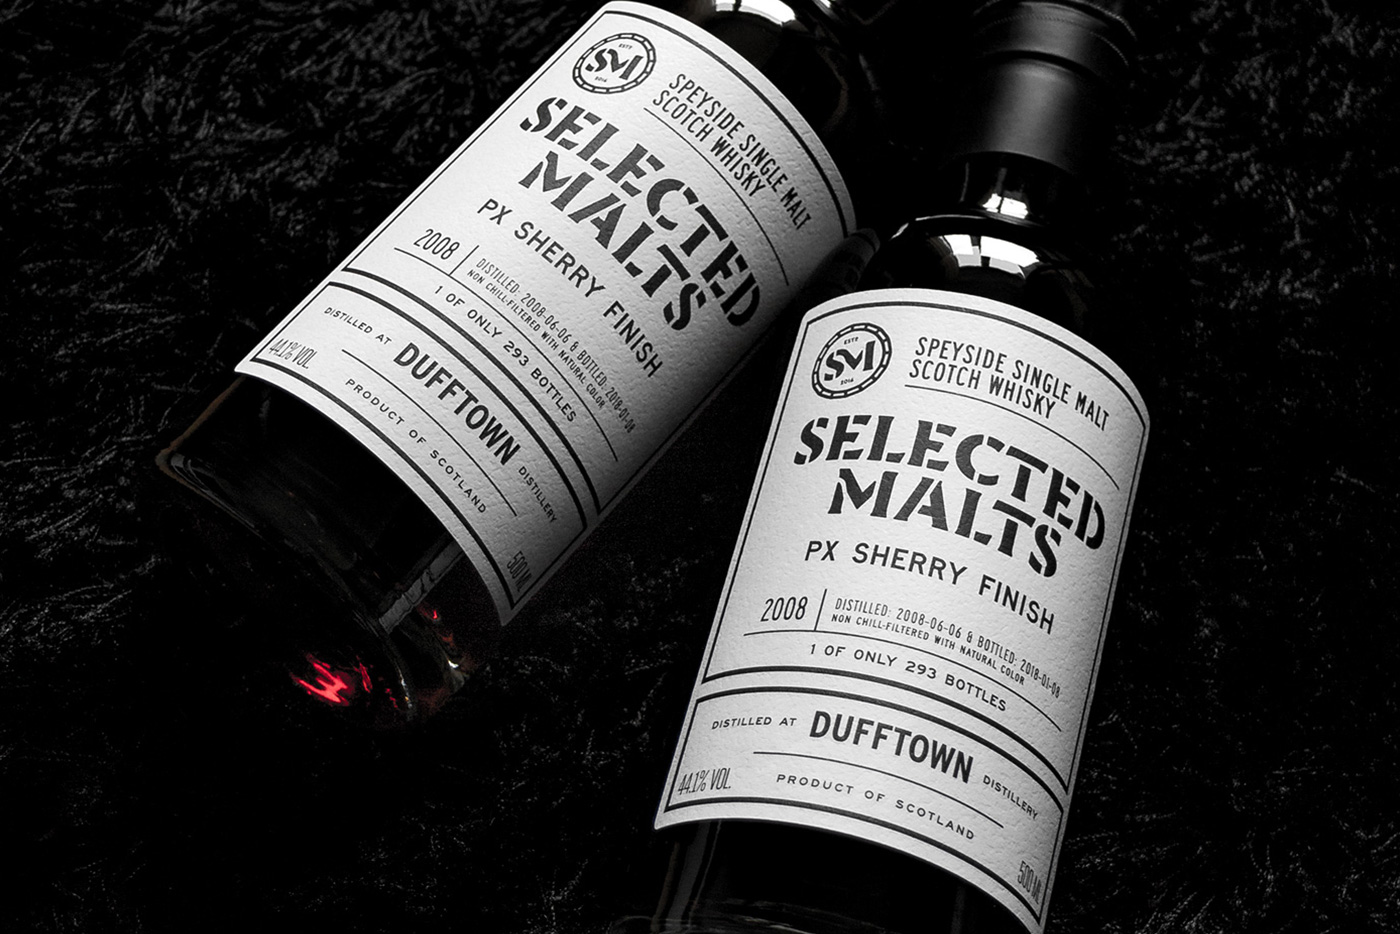 Selected Malts - Dufftown 2008